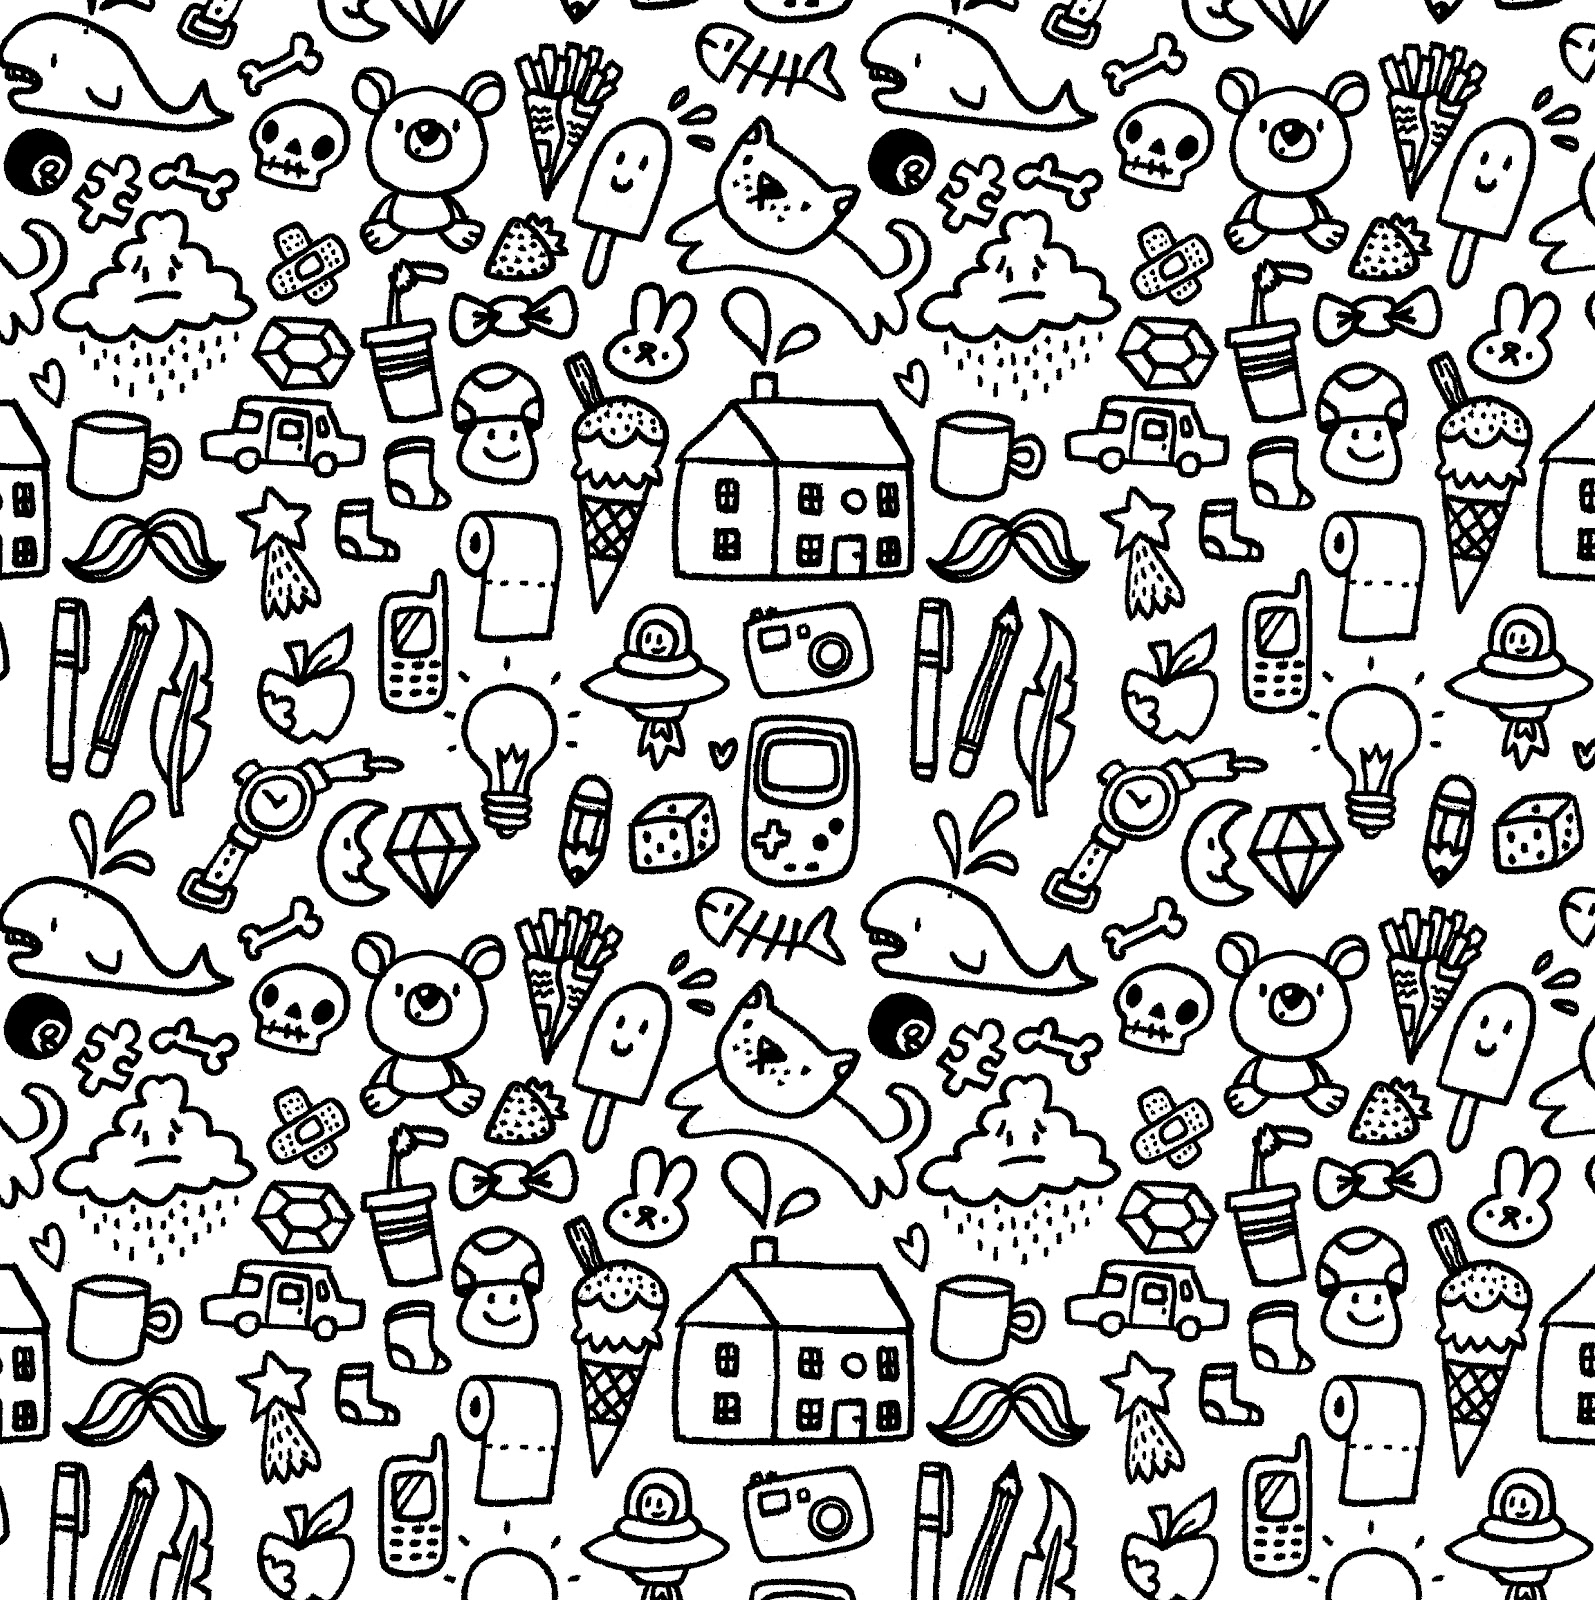 1595x1600 Cute Doodle Pattern Picture Hd Wallpapers Planners, Printables